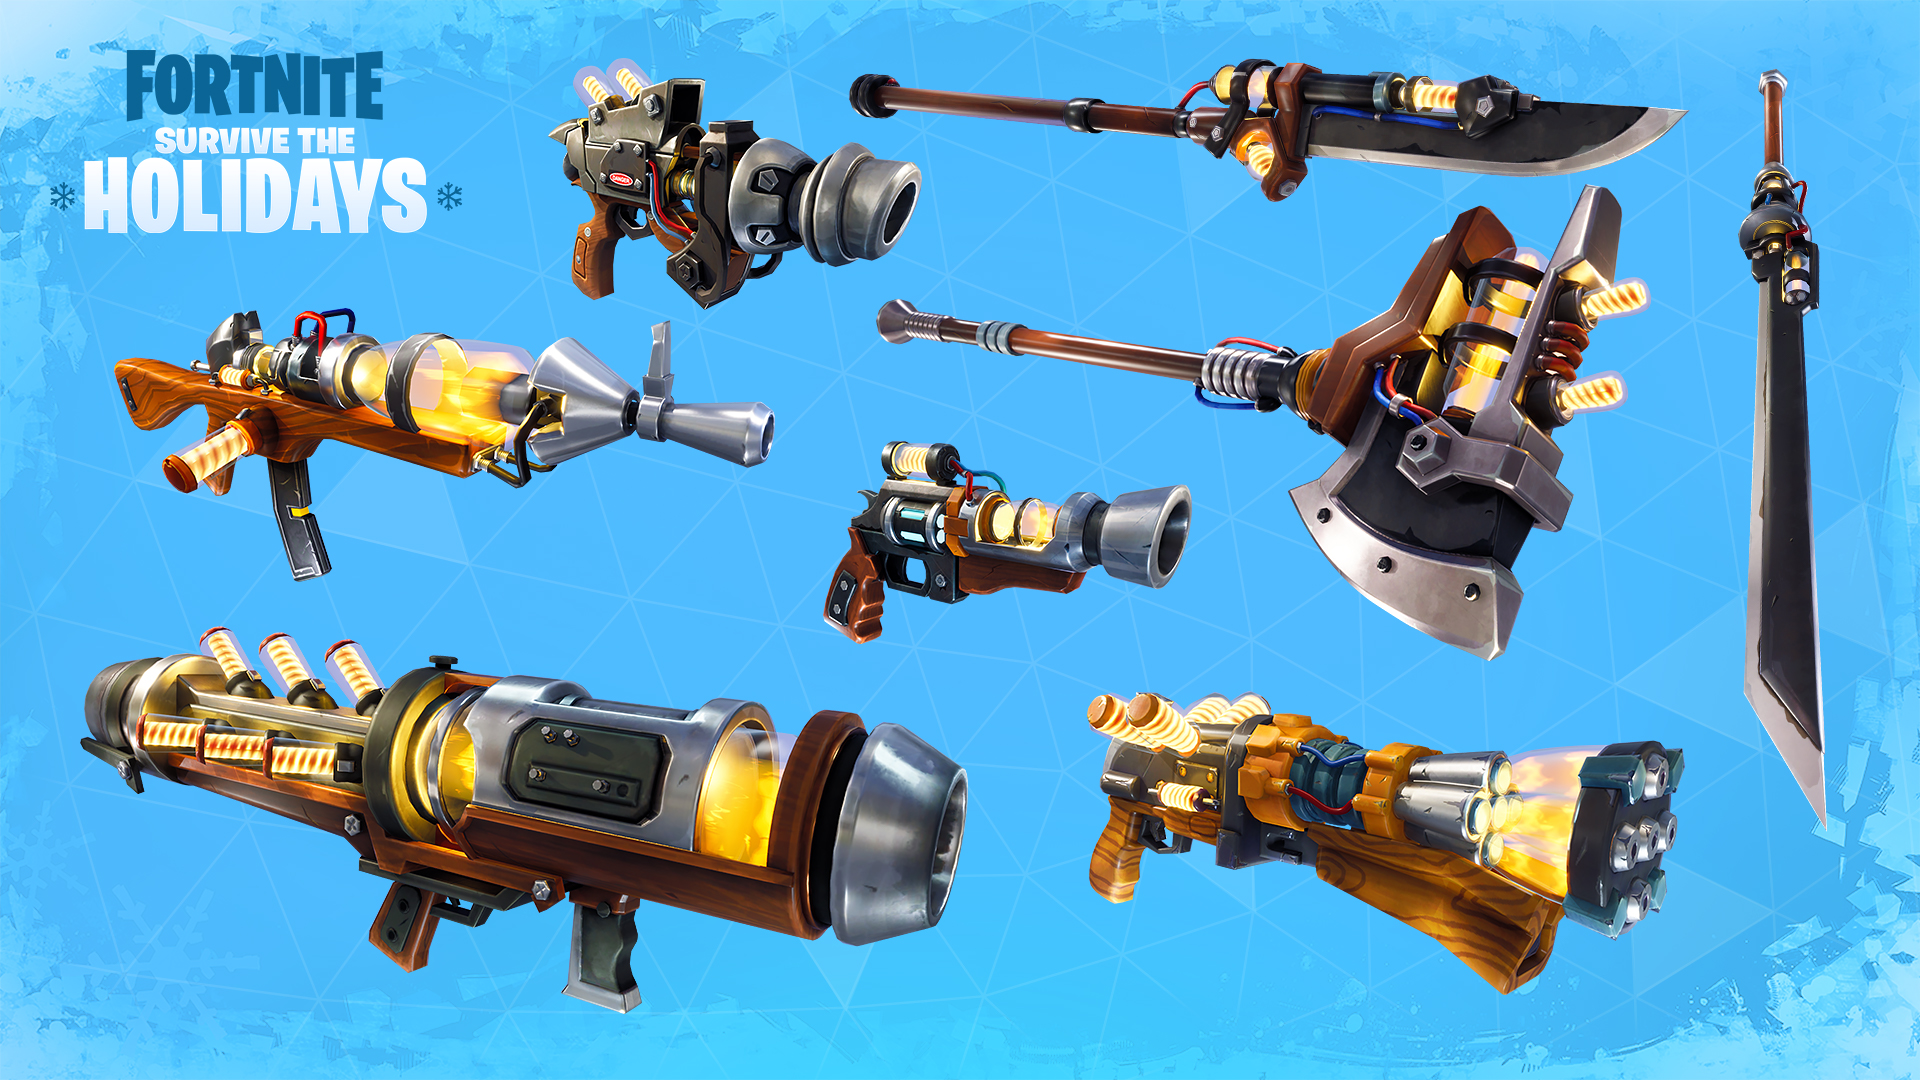 Image Vacuum Tube Set Jpg Fortnite Wiki Fandom Powered By Wikia